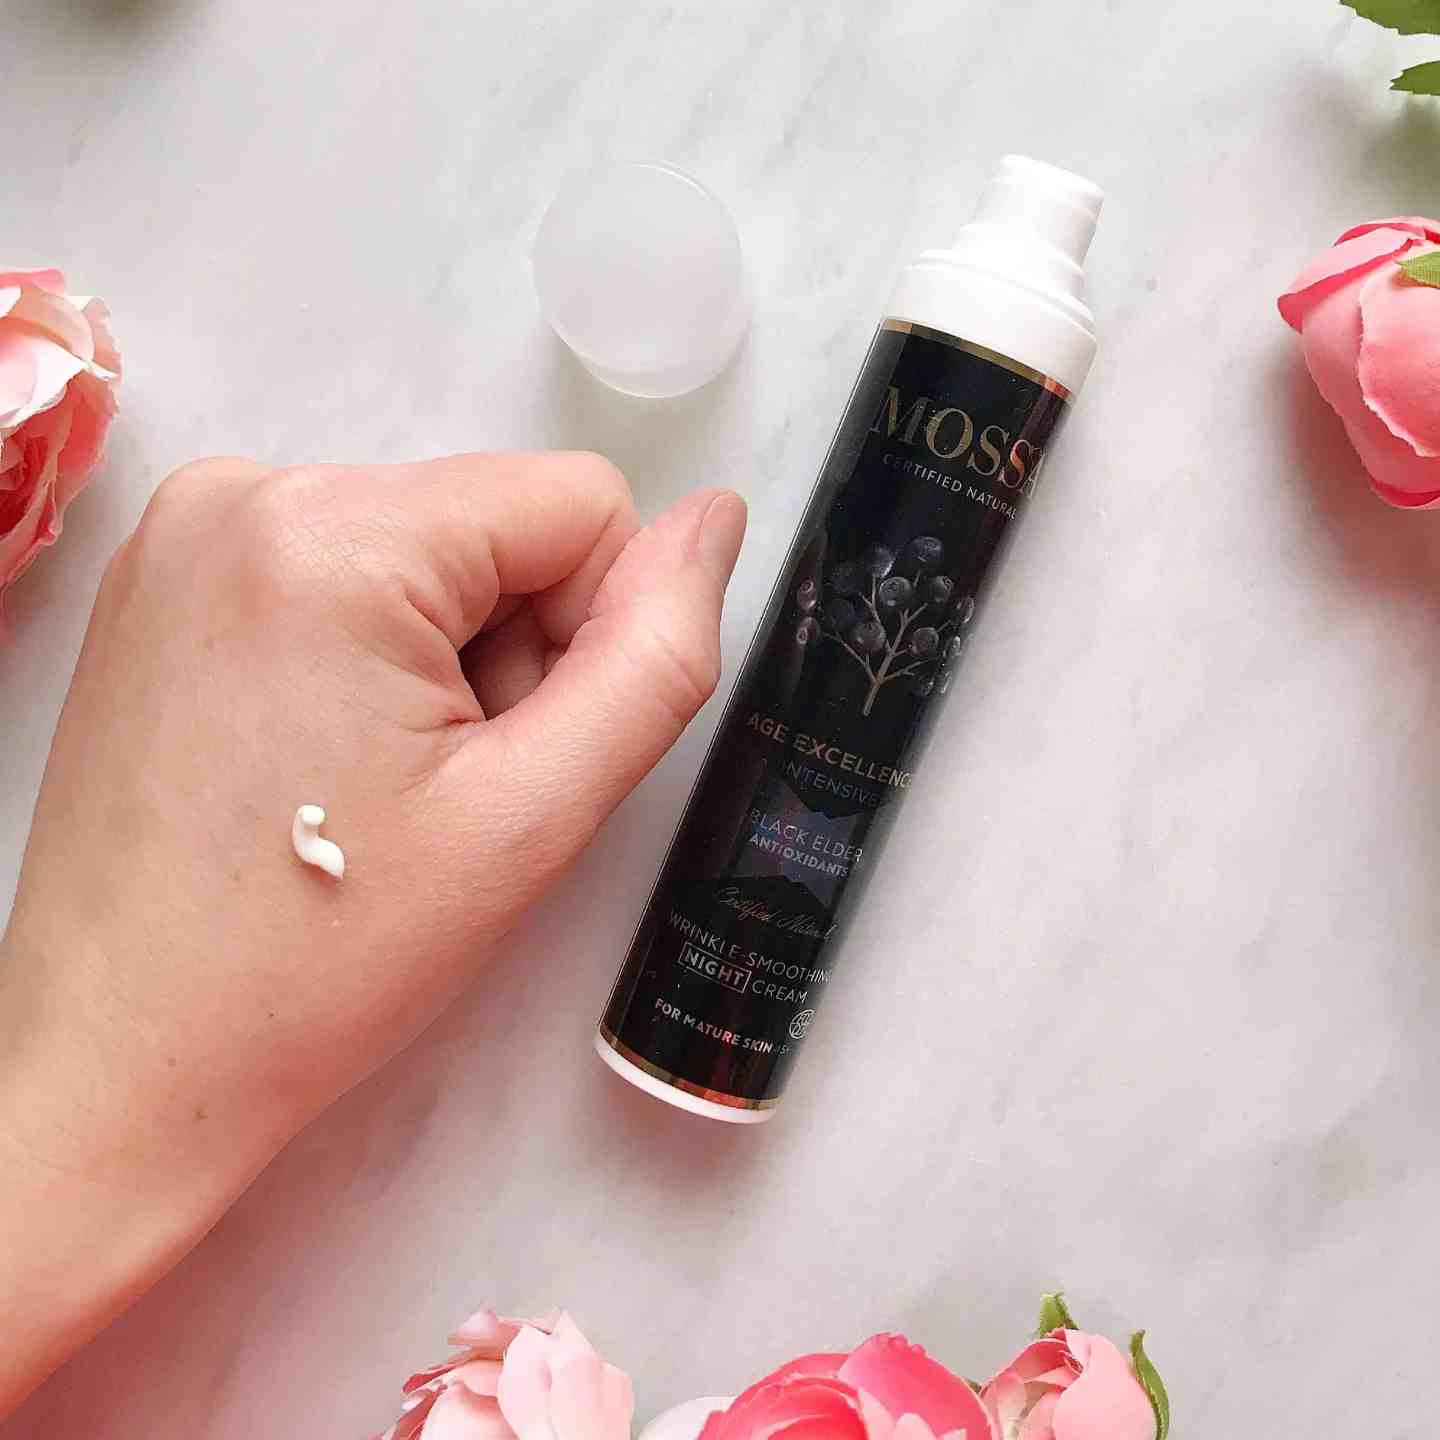 Mossa Organic Skincare: Age Excellence Wrinkle Smoothing Night Cream Review